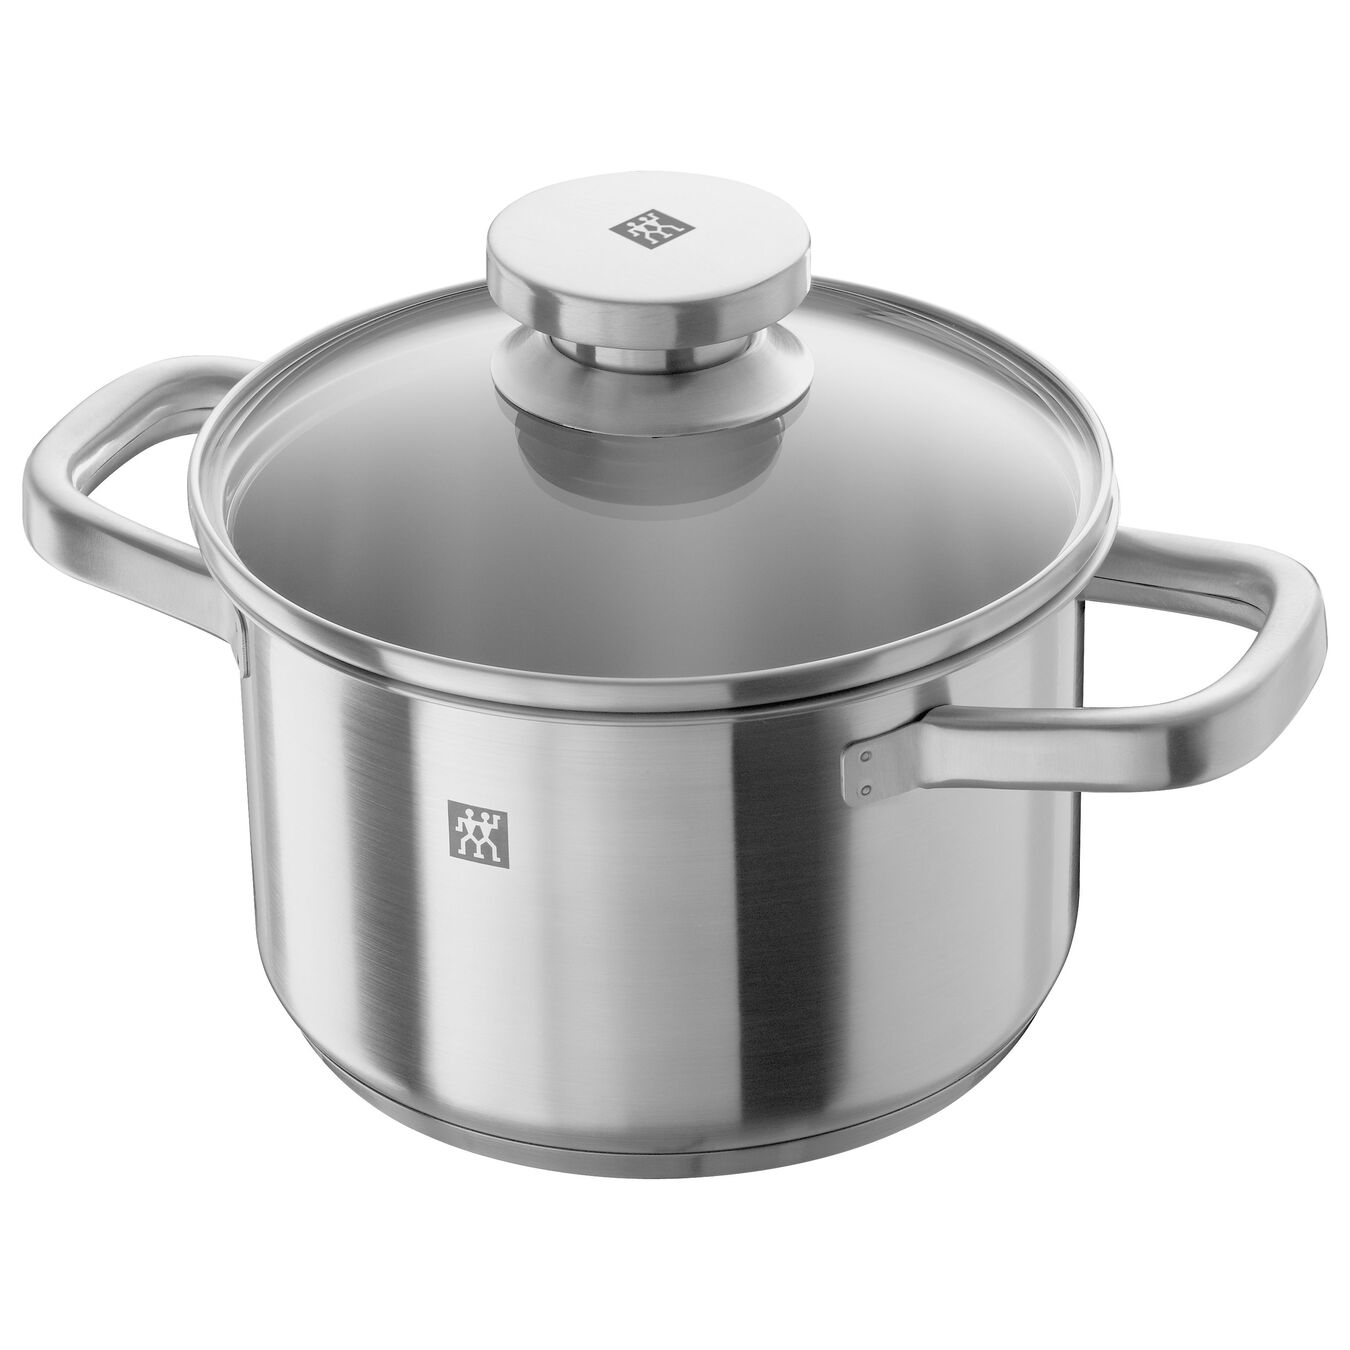 18/10 Stainless Steel 2.0L Sauce Pot with Lid,,large 1